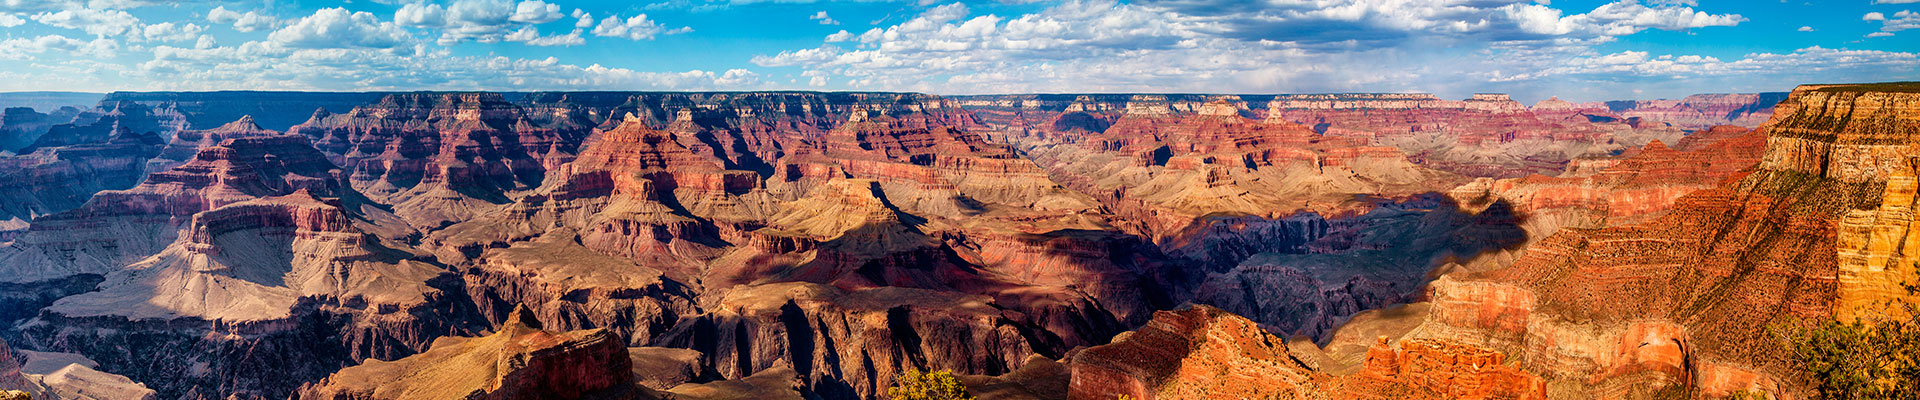 Fantasy RV Tours: 34 Day Western National Parks (34UWNP-082321)